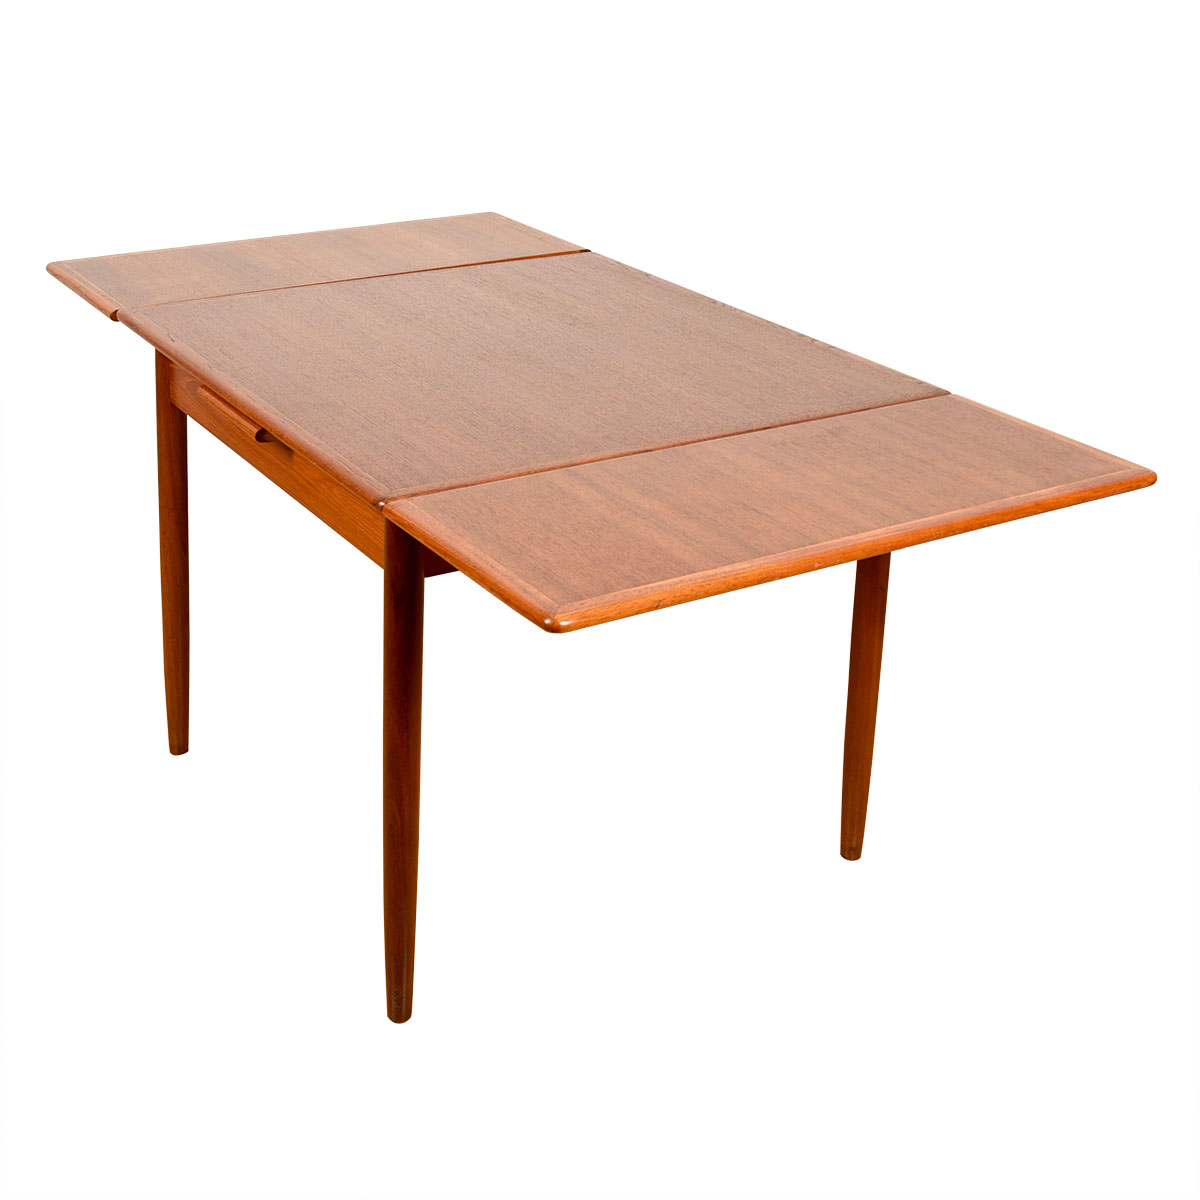 Danish Modern Teak Compact Square Expanding Dining Table